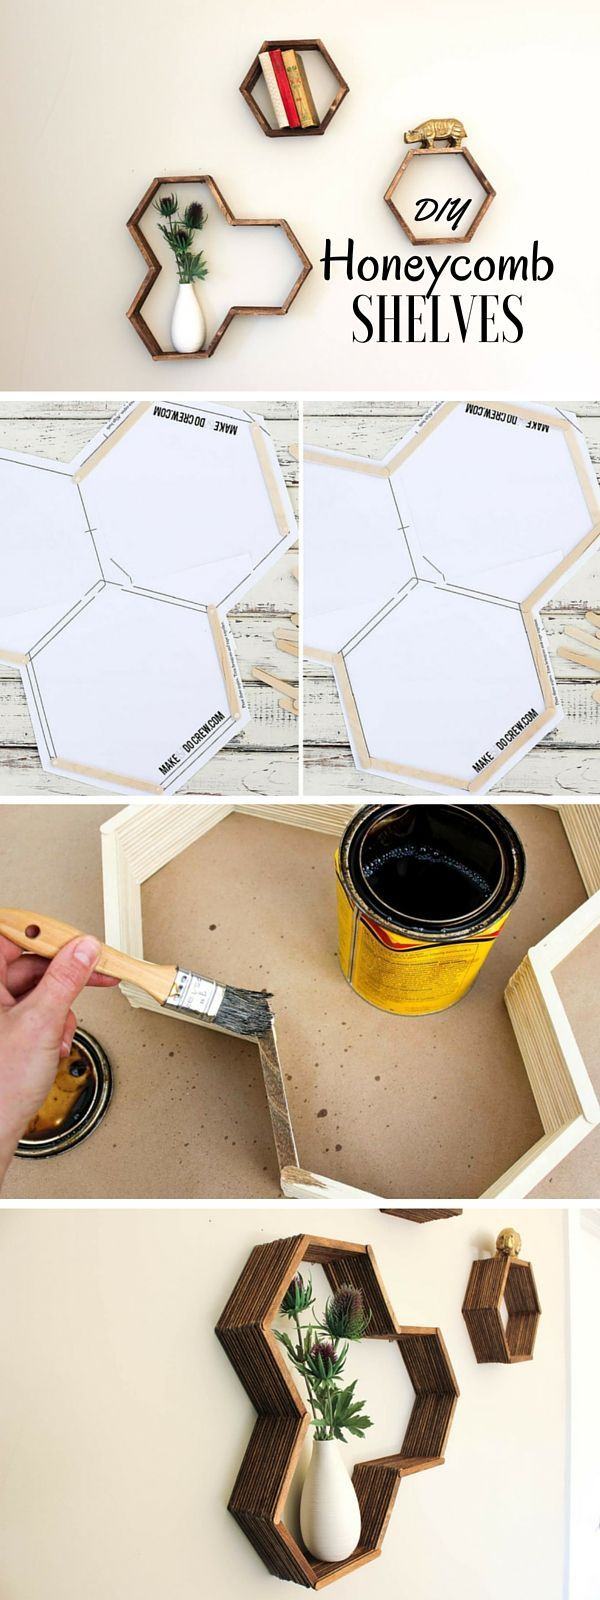 Check out the tutorial: #DIY Honeycomb Shelves @Industry Standard Design